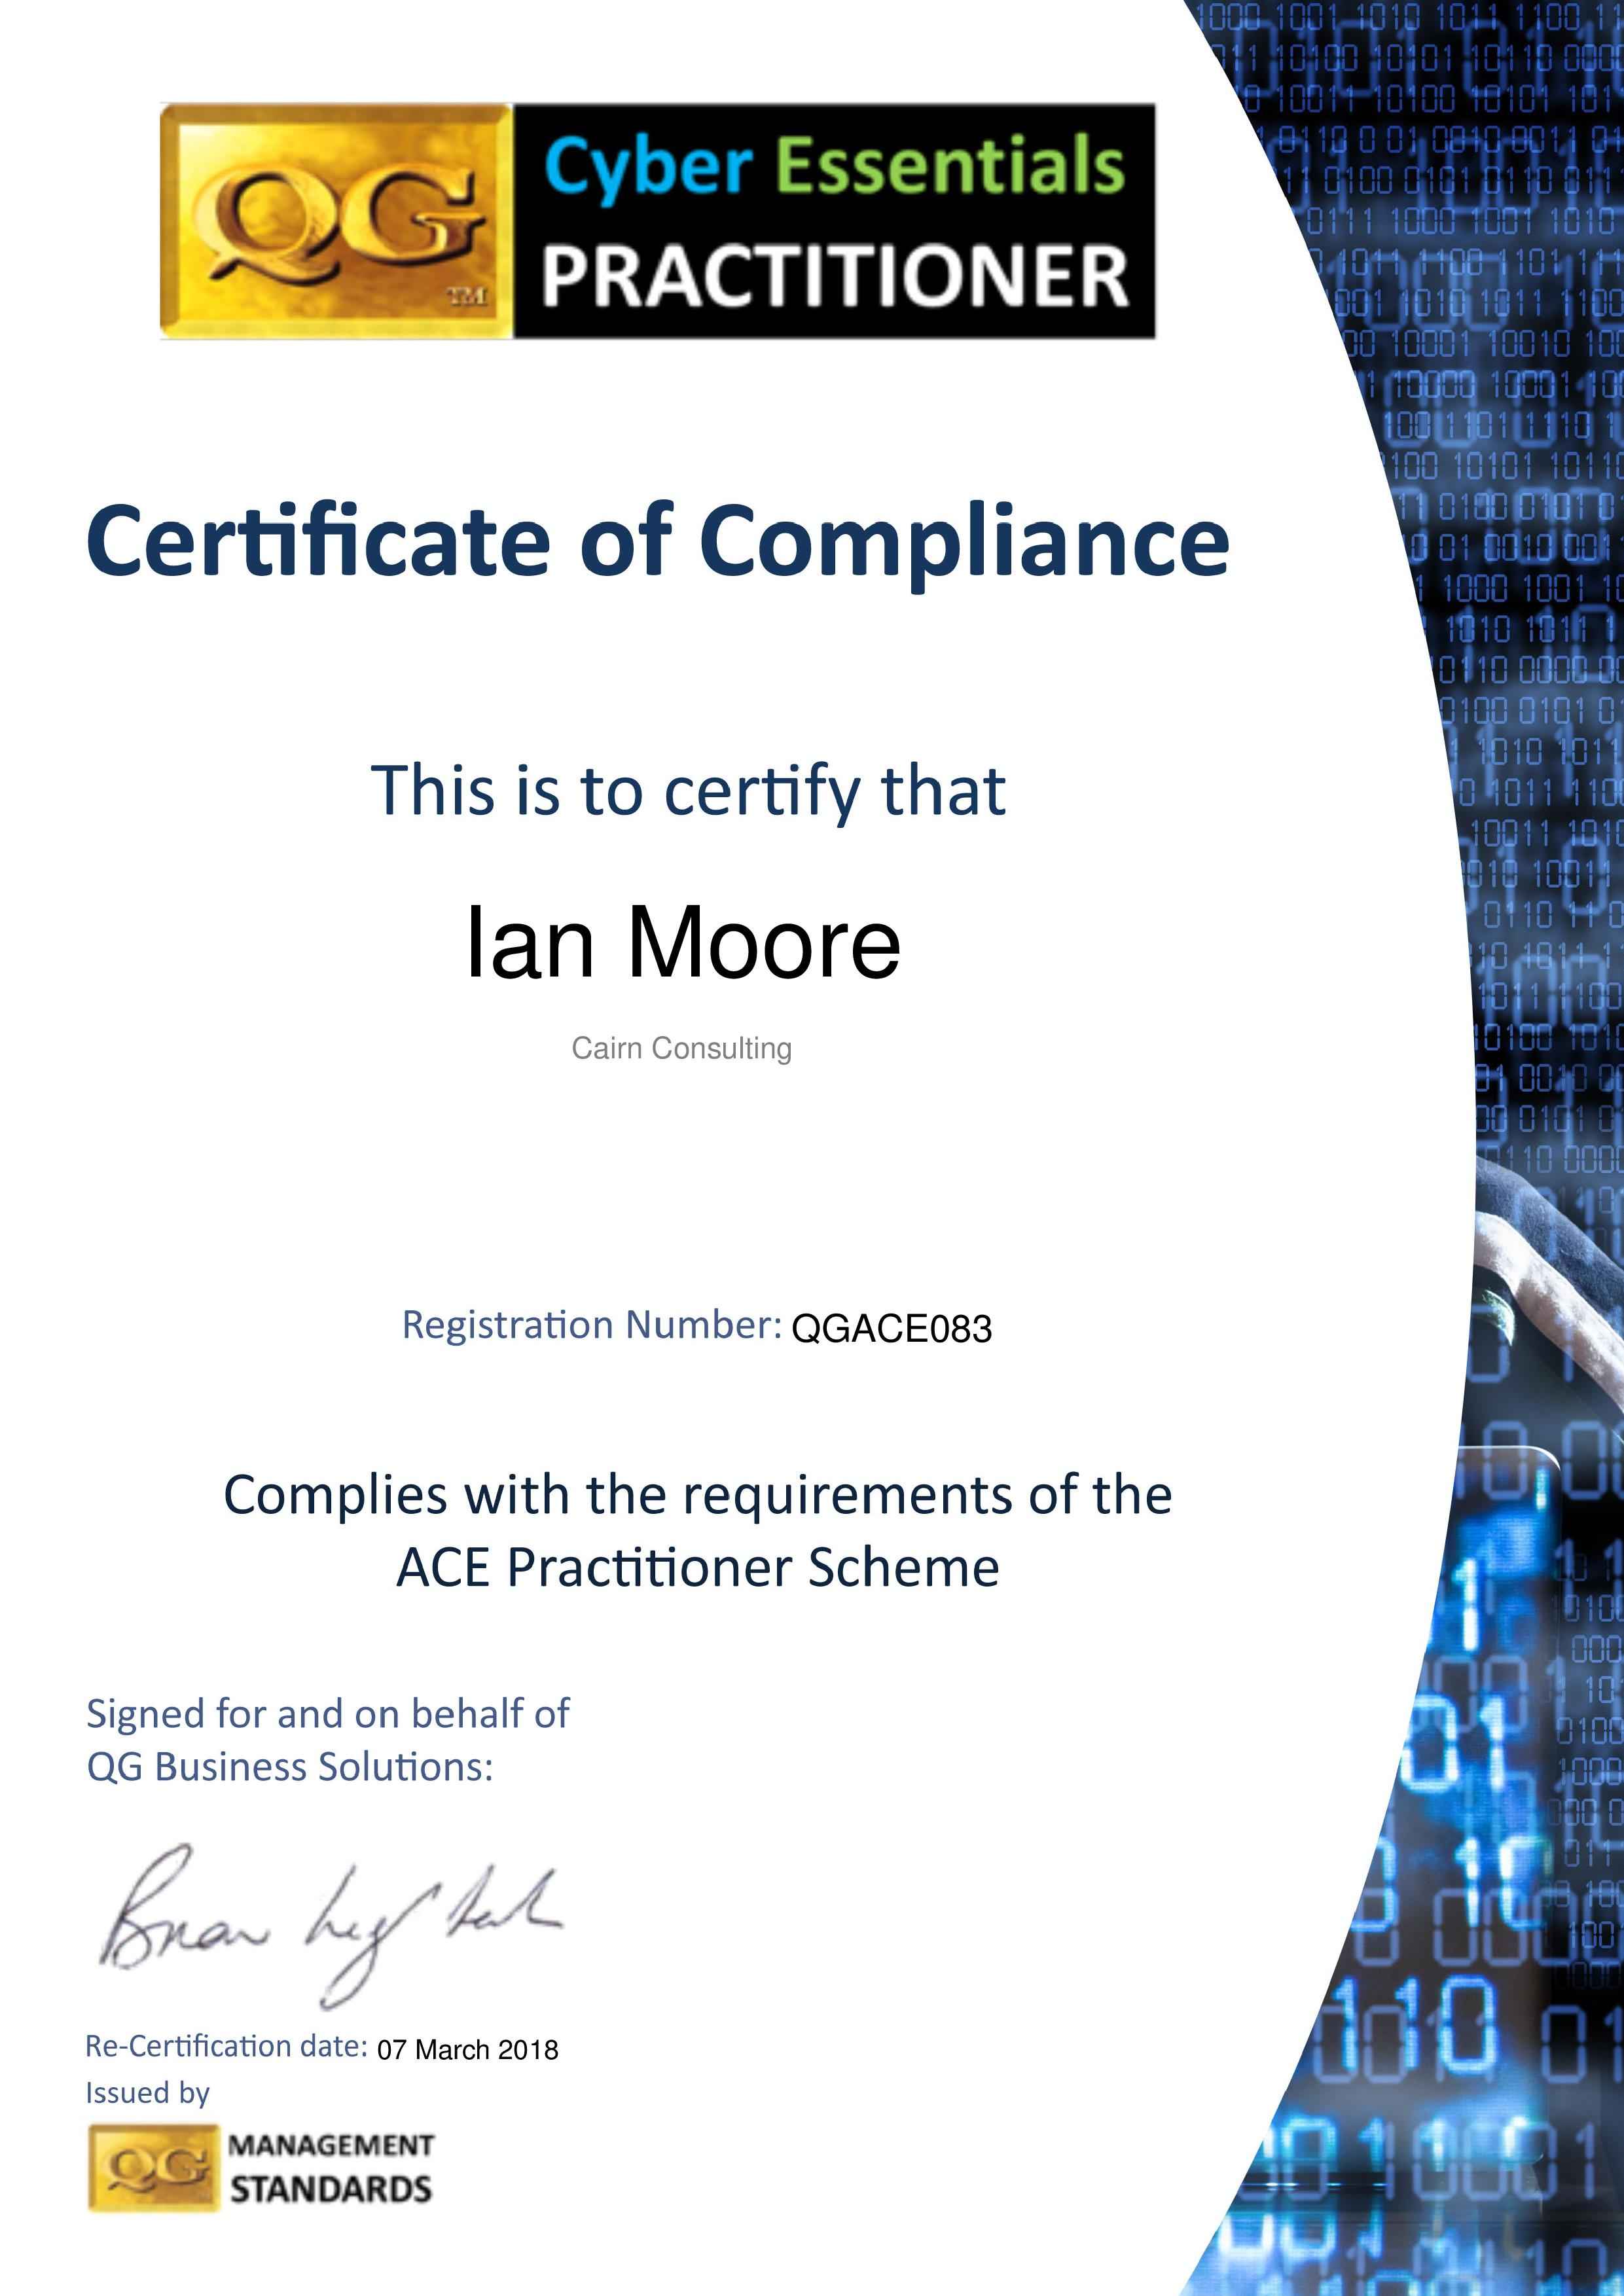 QGACE083 Cairn Consulting